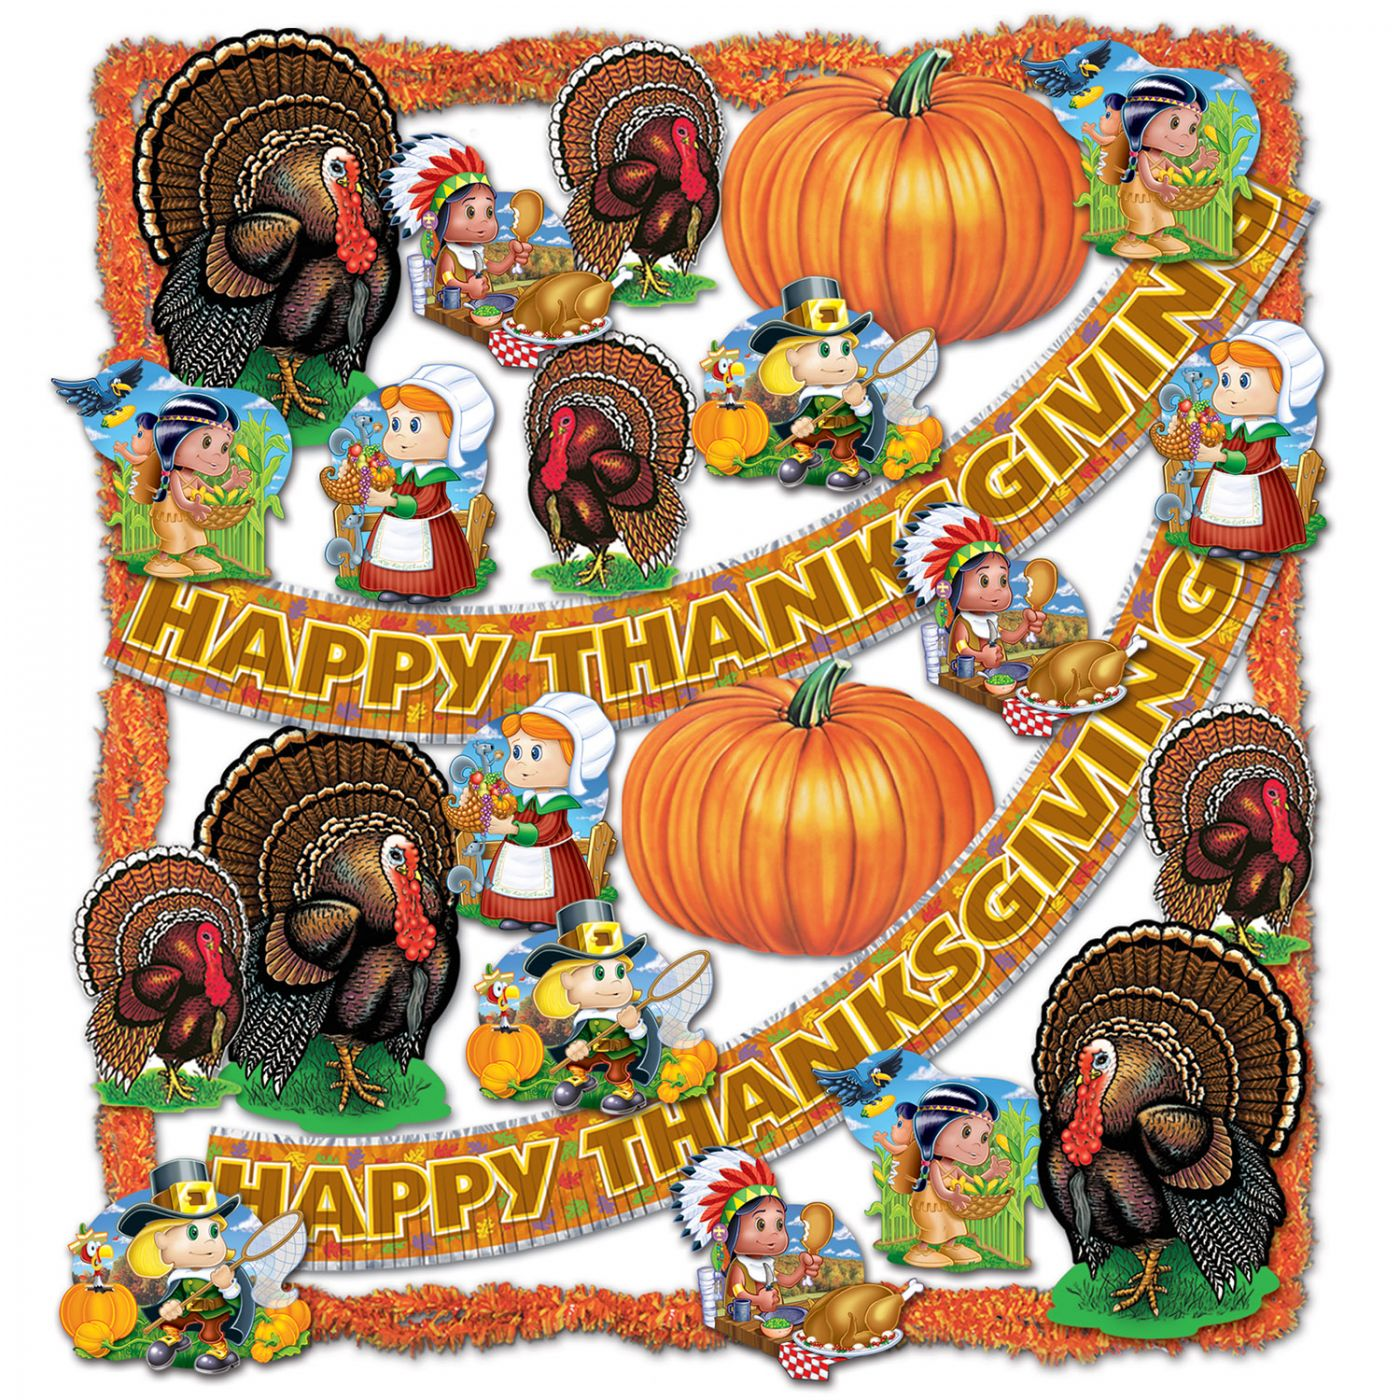 FR Thanksgiving Trimorama - 25 Pcs (1) image